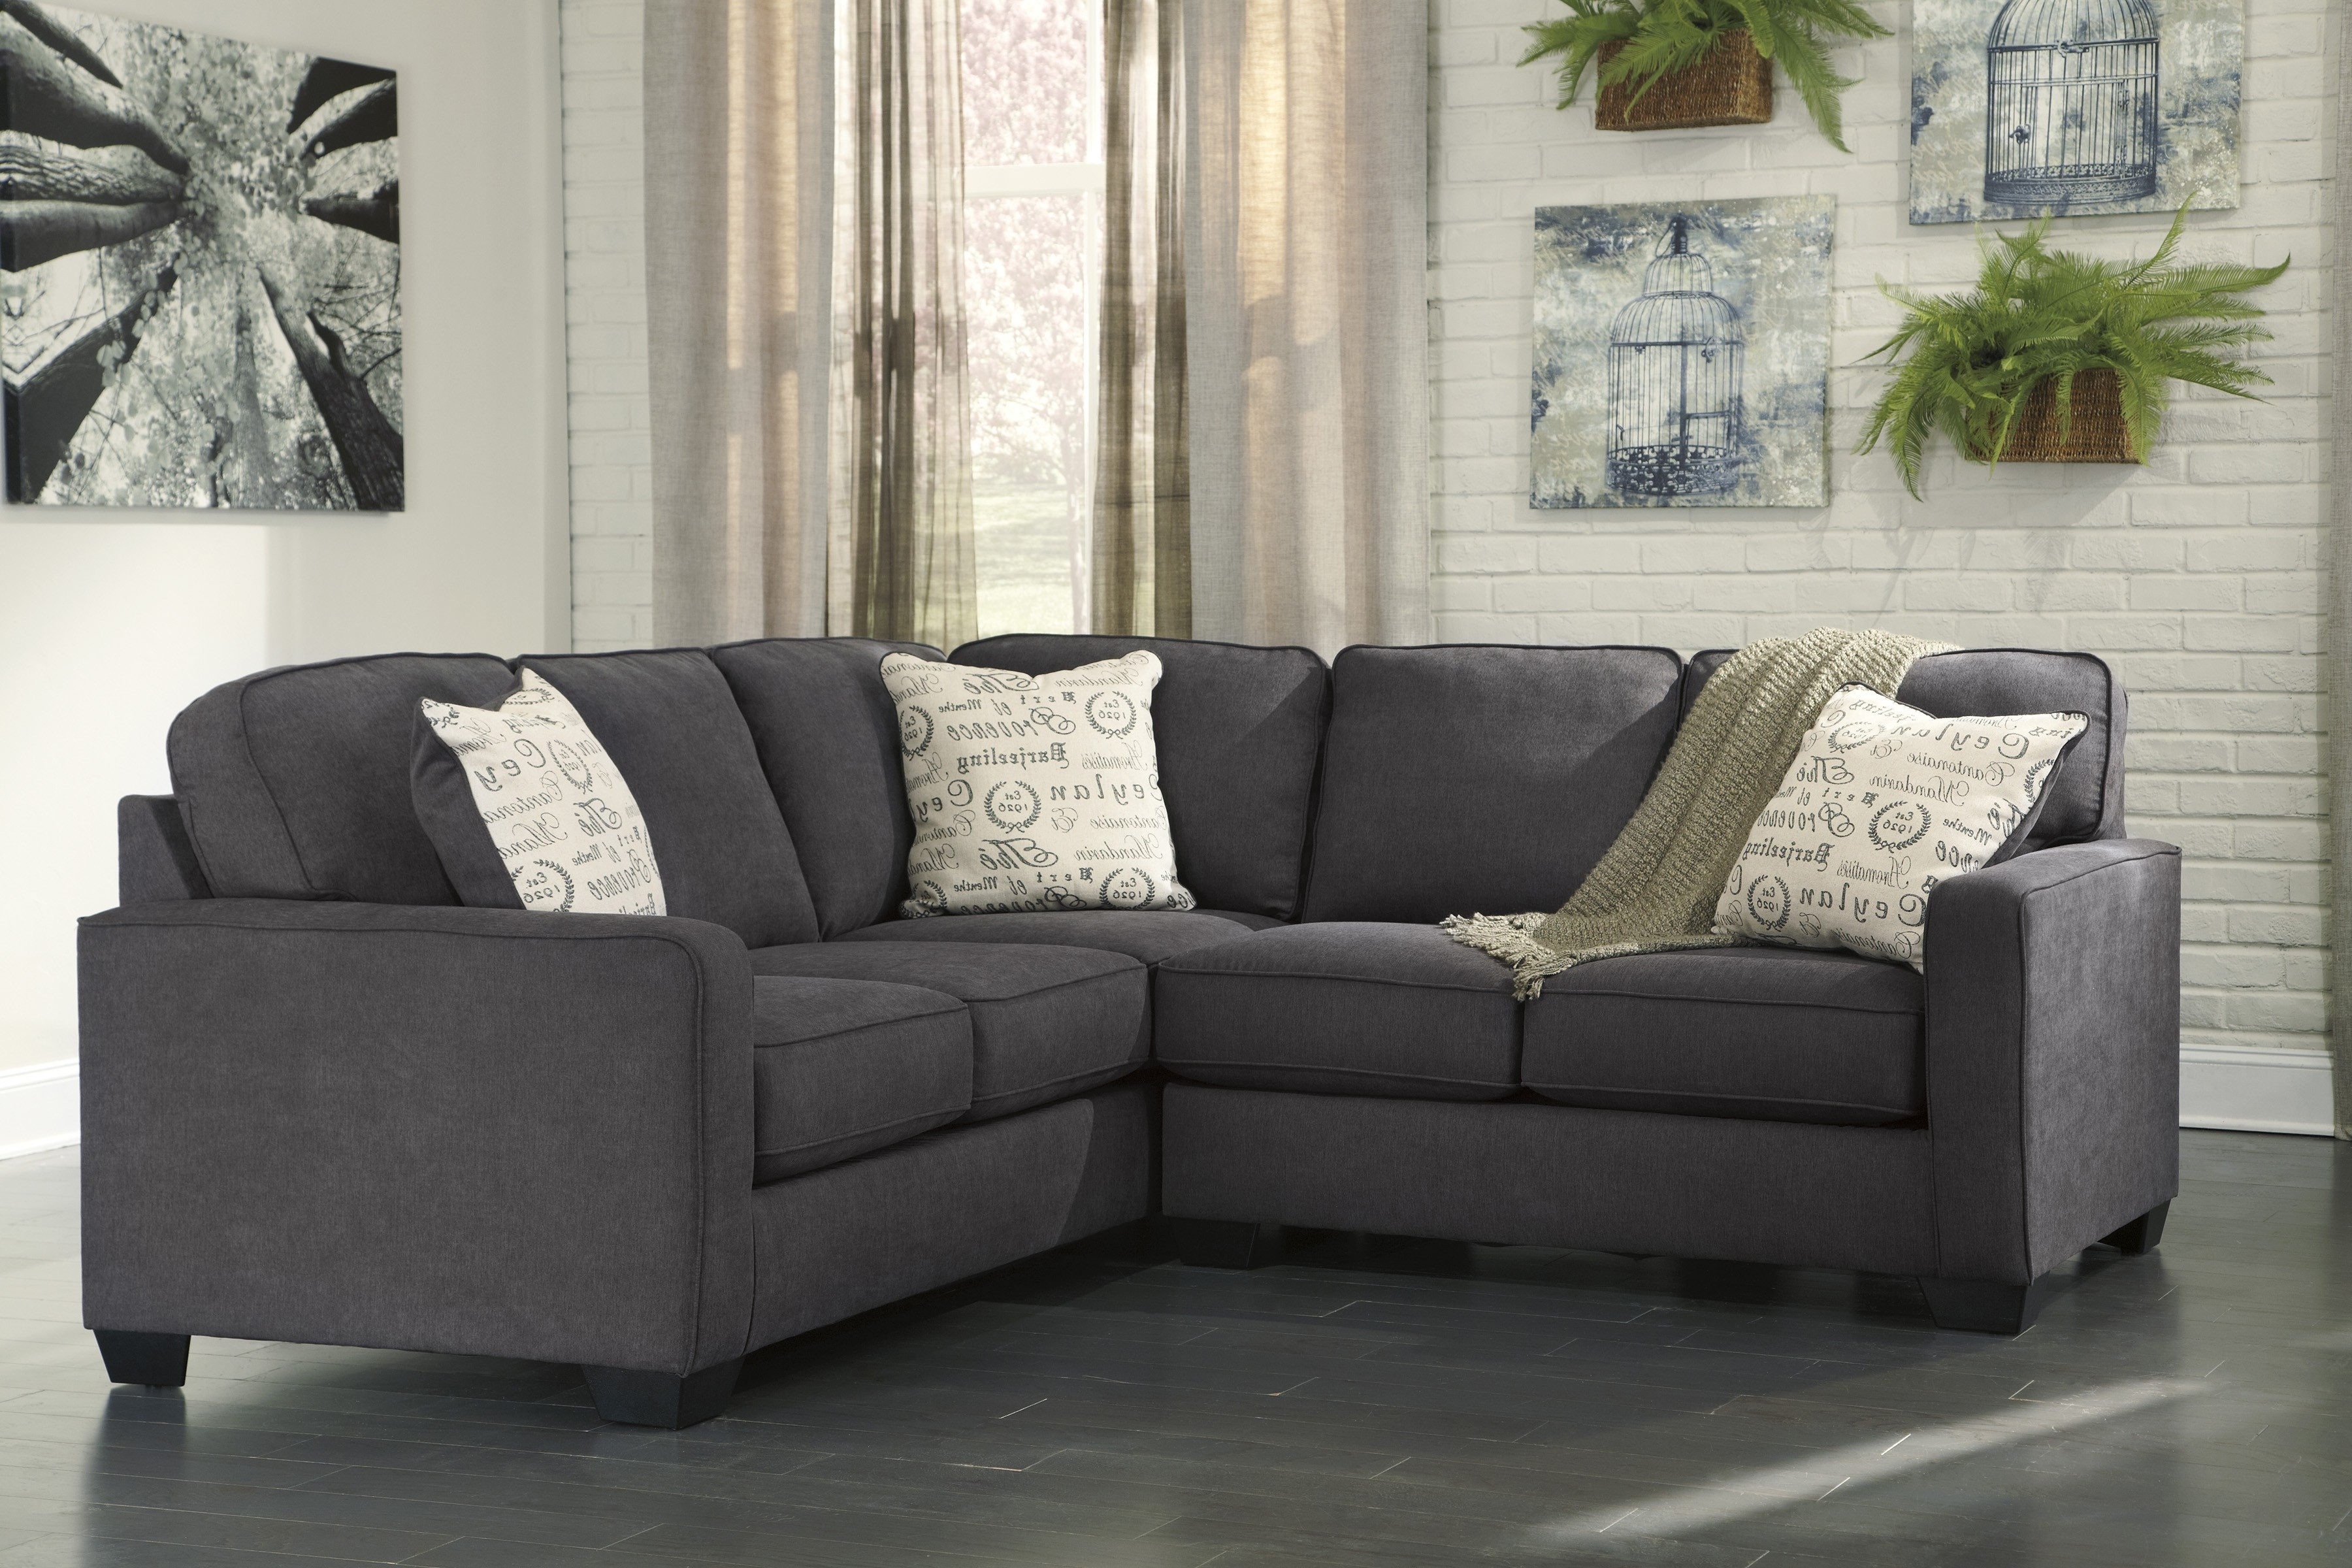 Alenya Charcoal Piece Sectional Sofa For Furnitureusa Raf Love Tures For Tess 2 Piece Power Reclining Sectionals With Laf Chaise (Image 3 of 25)